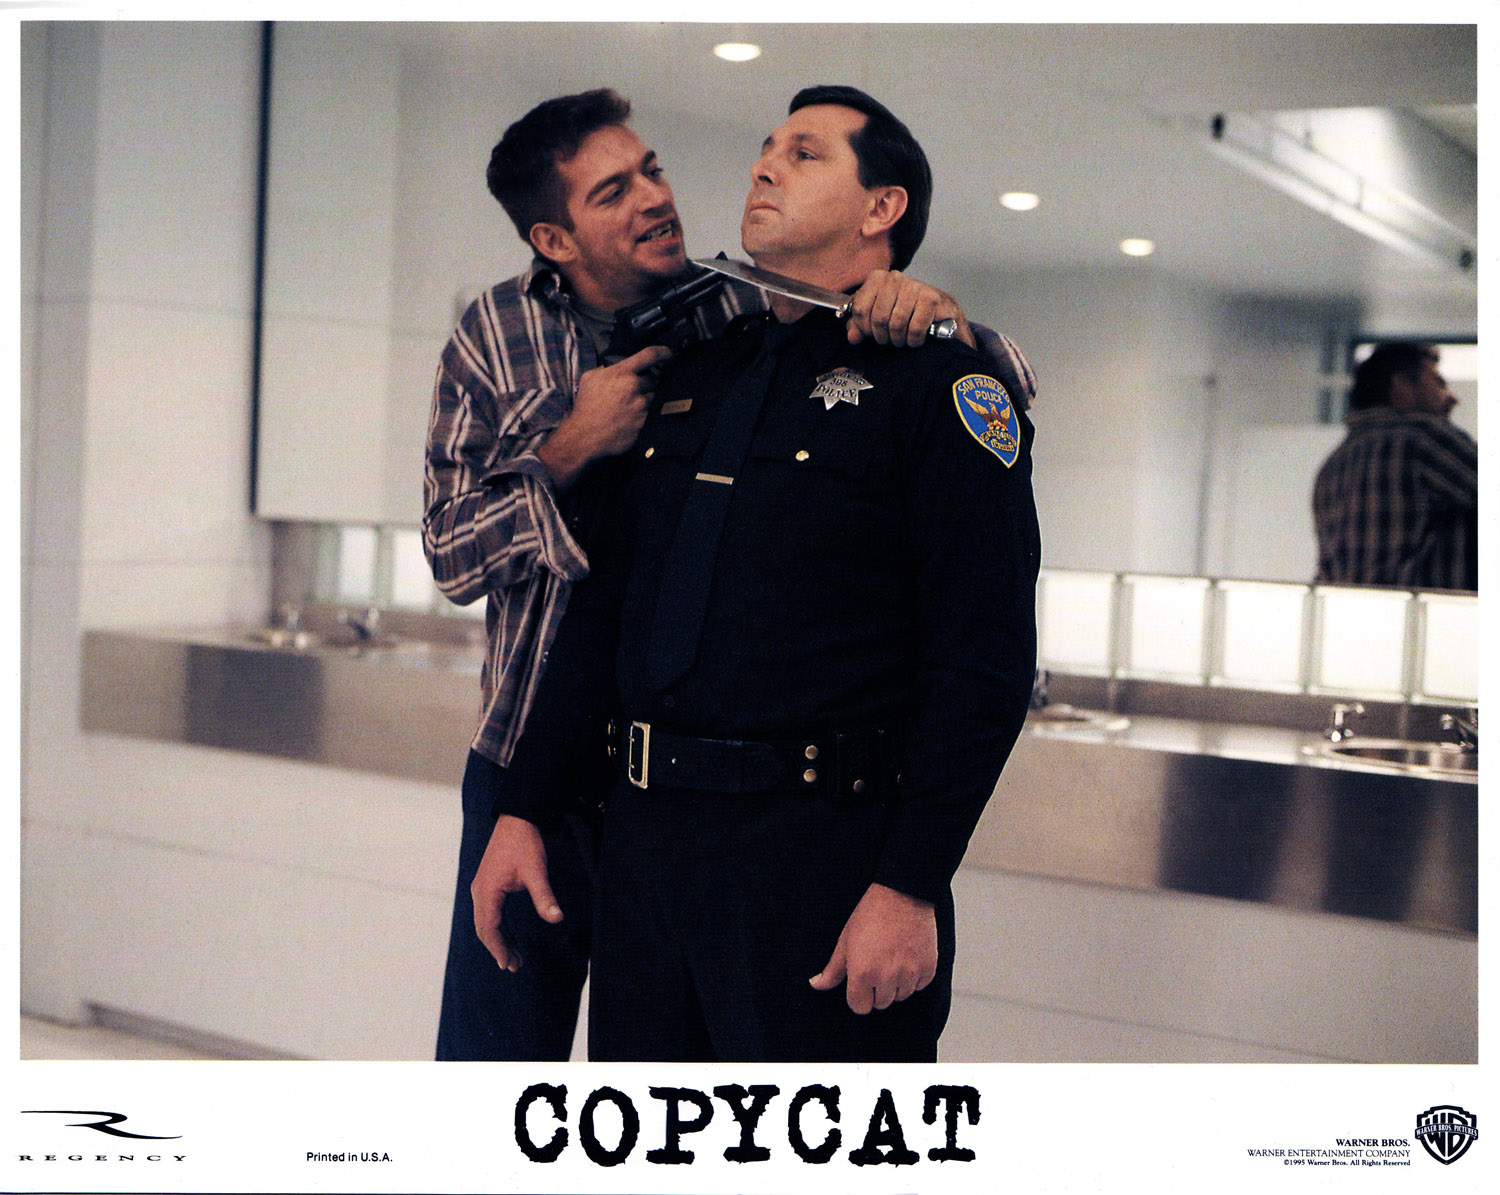 copycat-uk-4